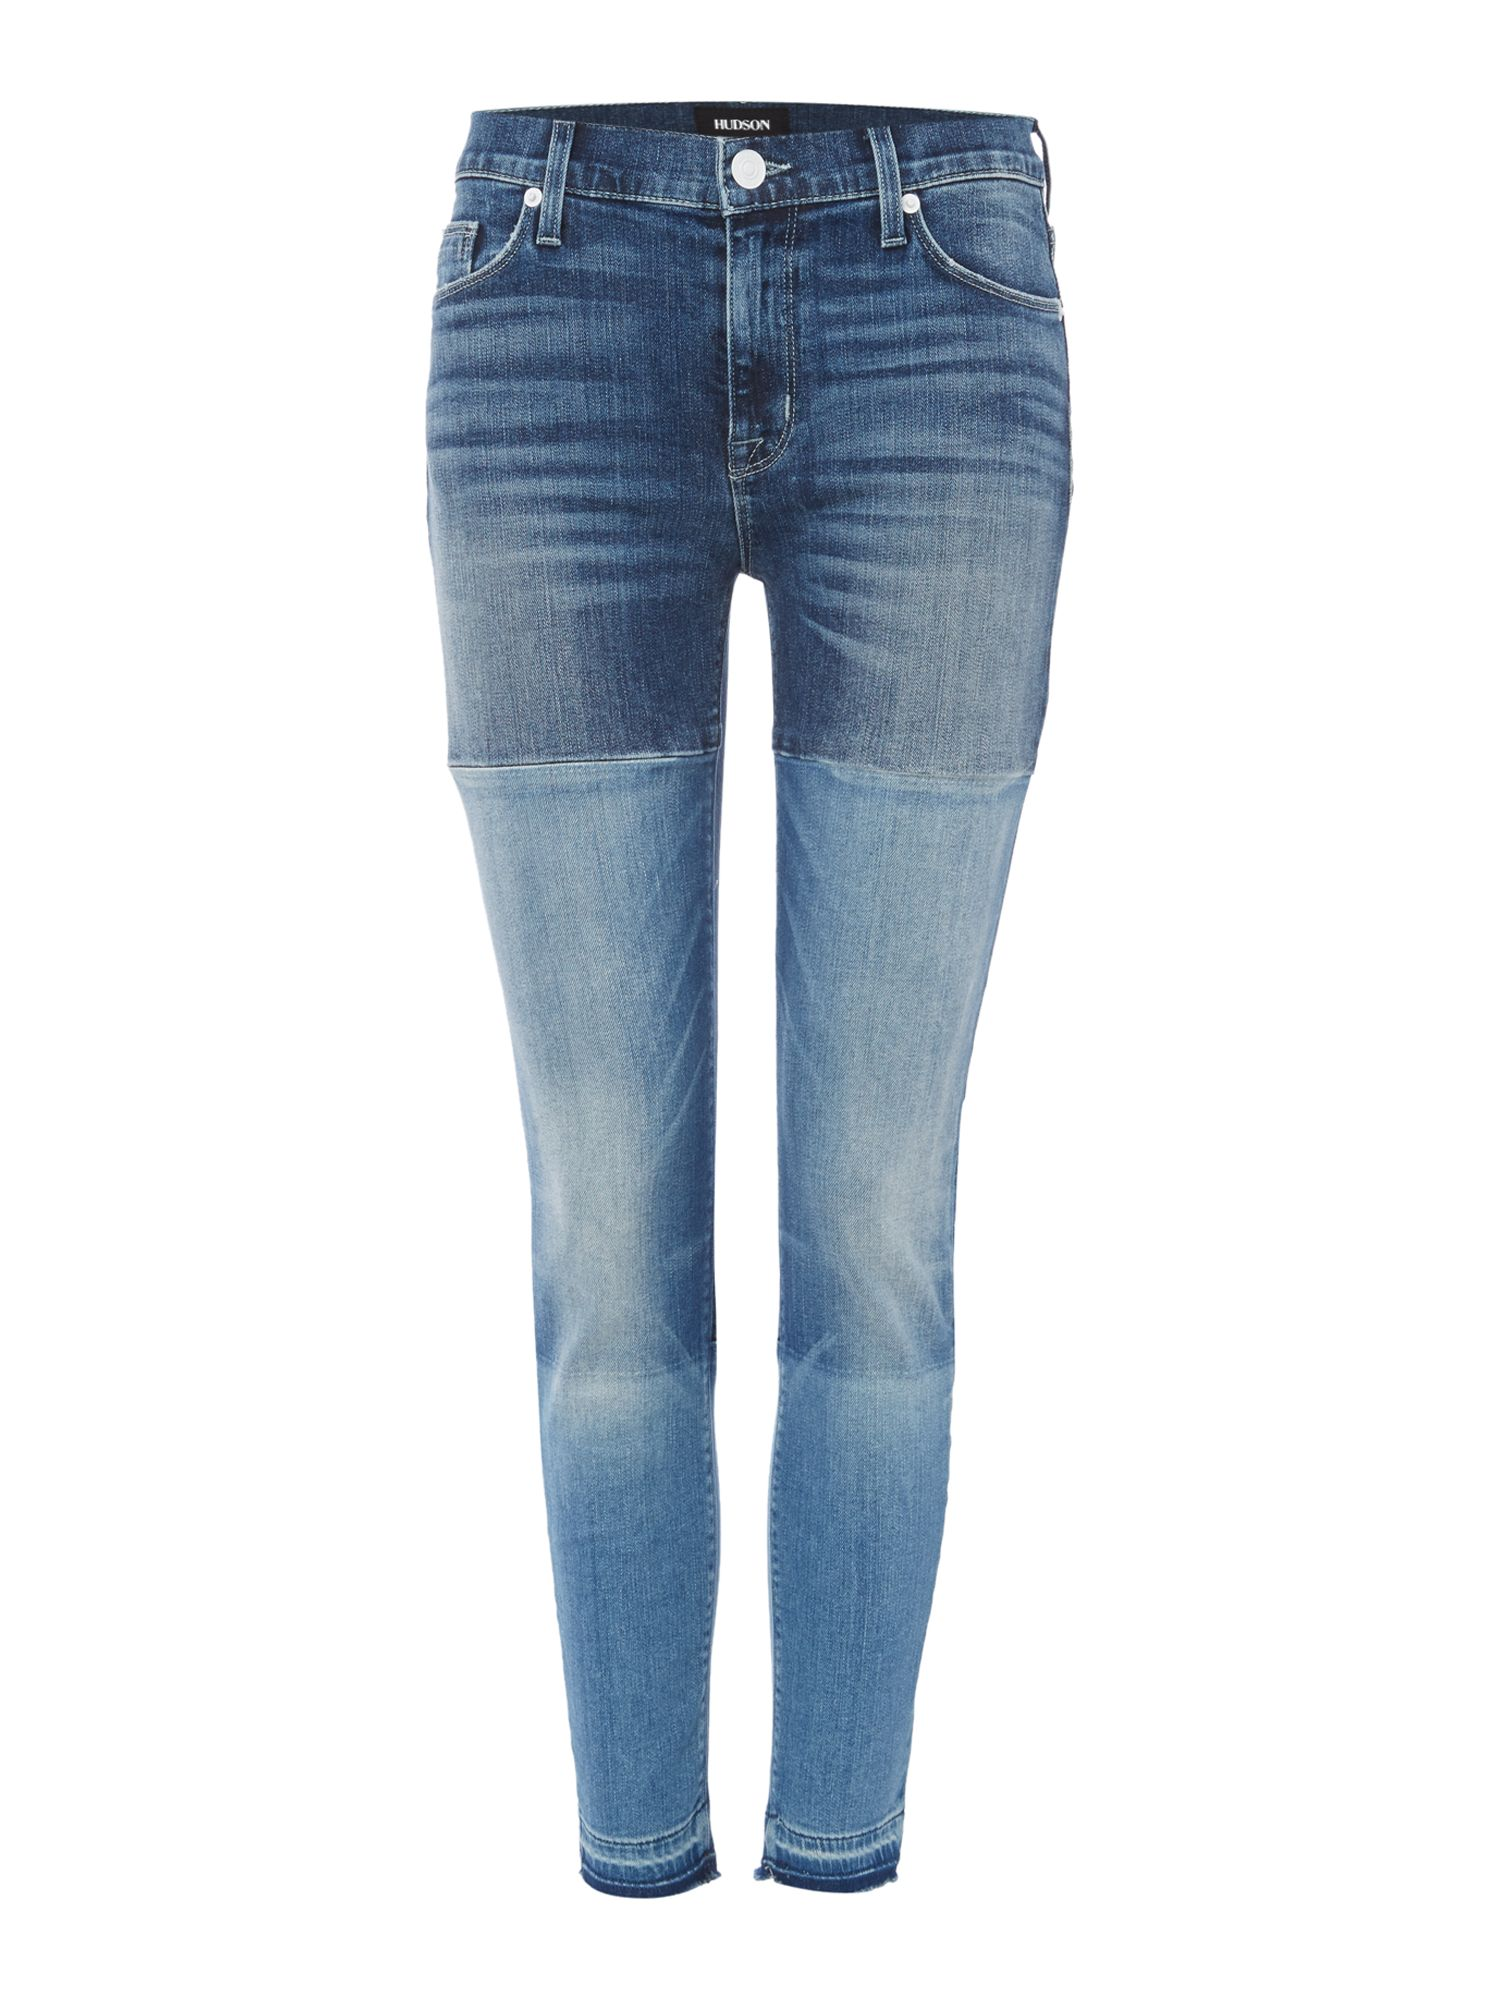 Hudson Jeans Isla midrise crop patch jeans in high marks Denim Mid Wash